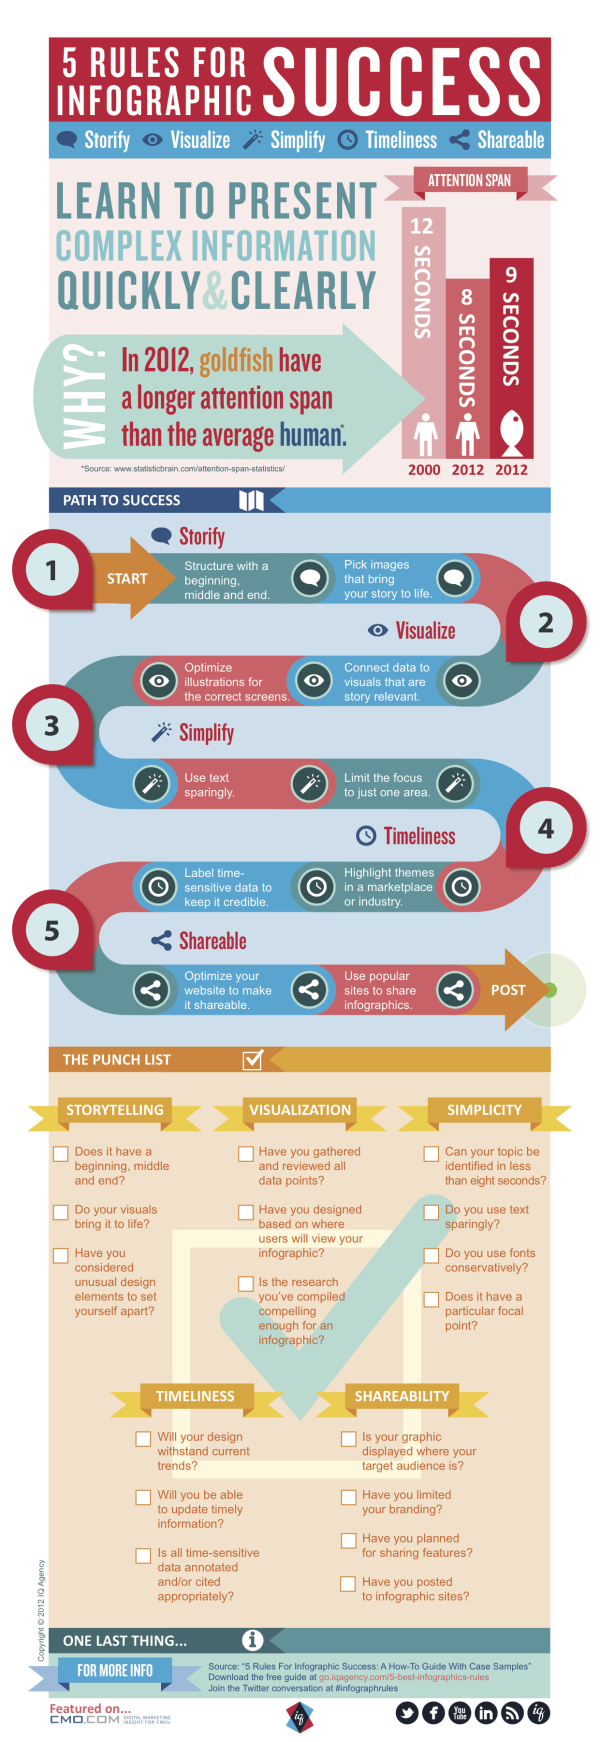 CMO.com: 5 rules for infographics success. It's not just enough to create an infographic and slap it on your website. You want to make it visually appealing, informative and most of all, useful. This infographic shows how to achieve all of that and more.